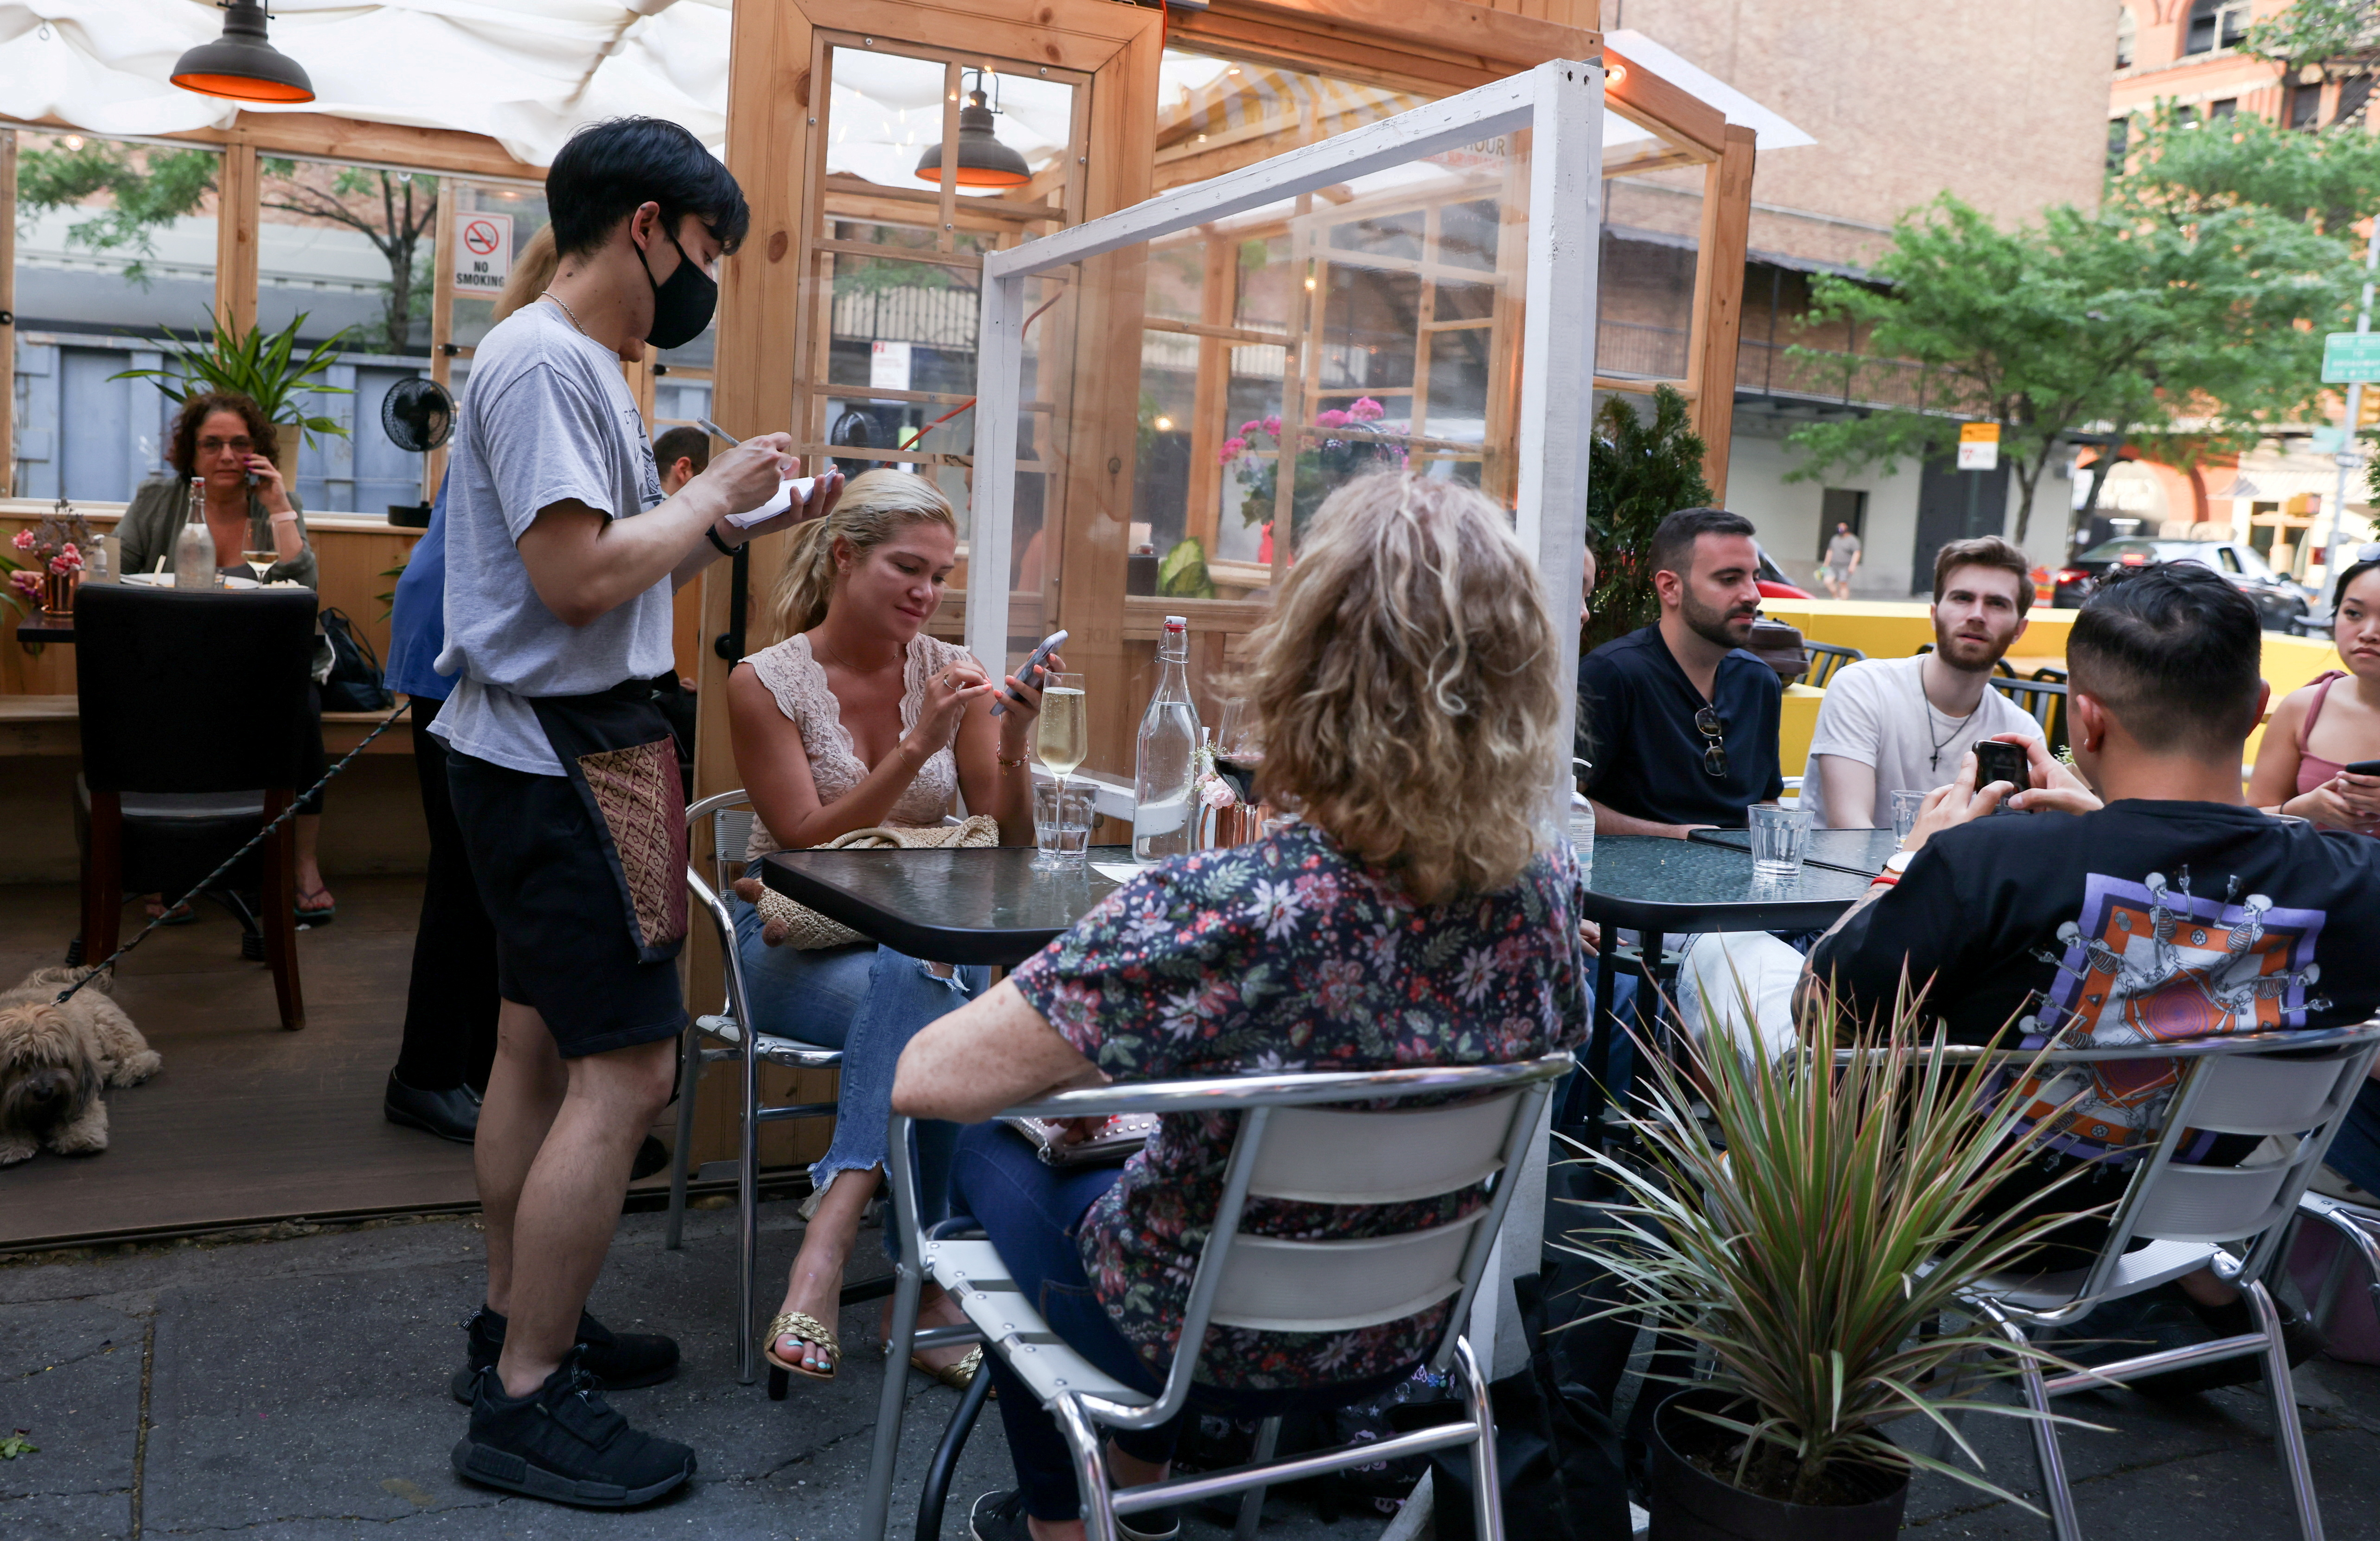 Guests enjoy outdoor dining in the Manhattan borough of New York City, U.S., May 23, 2021. REUTERS/Caitlin Ochs